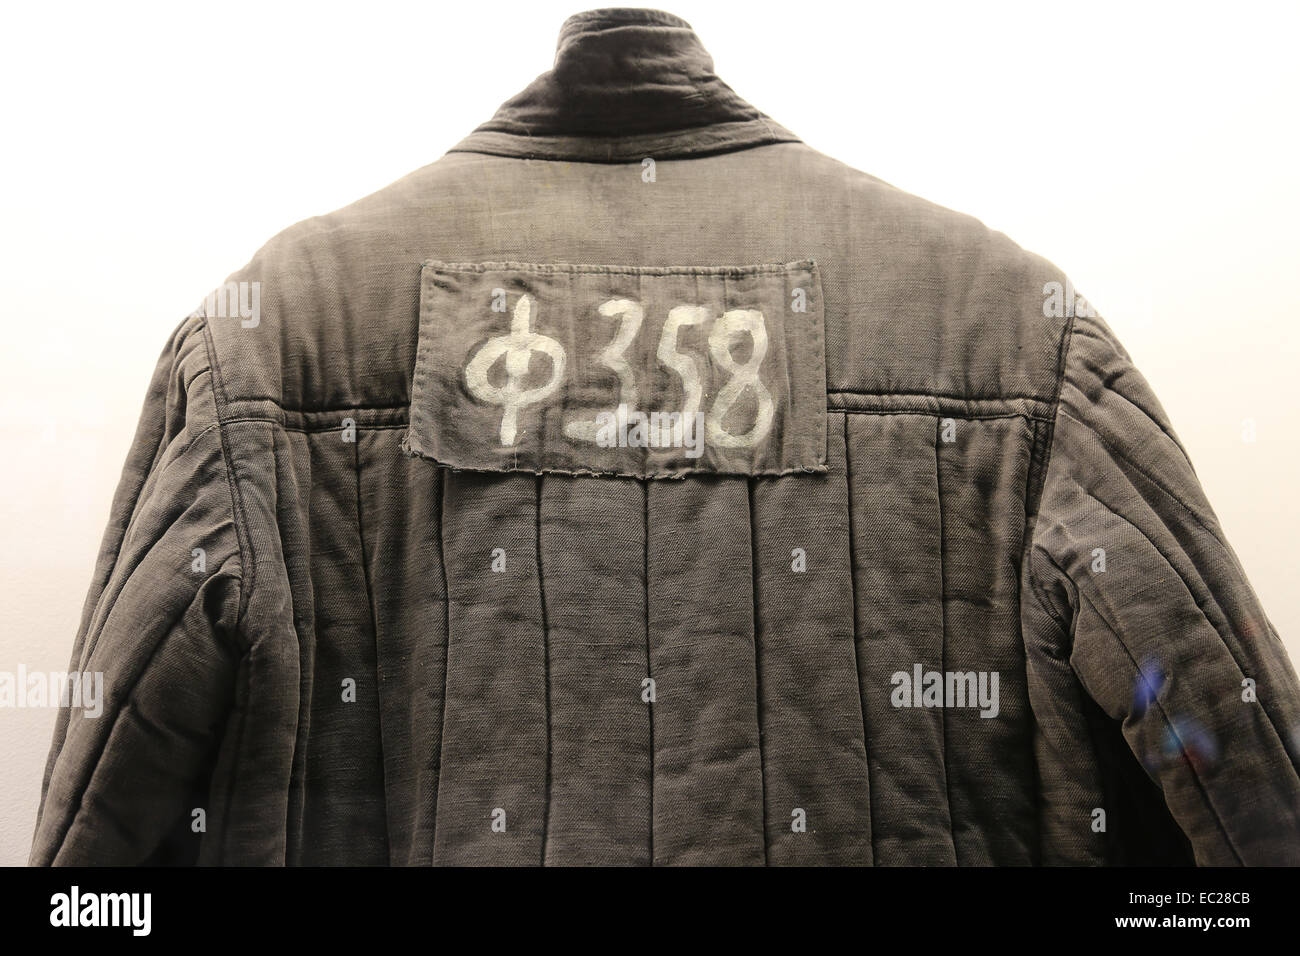 Gulag, Soviet forced labor camp. Prisoner's jacket, each deportee had an identification number assigned to them. - Stock Image